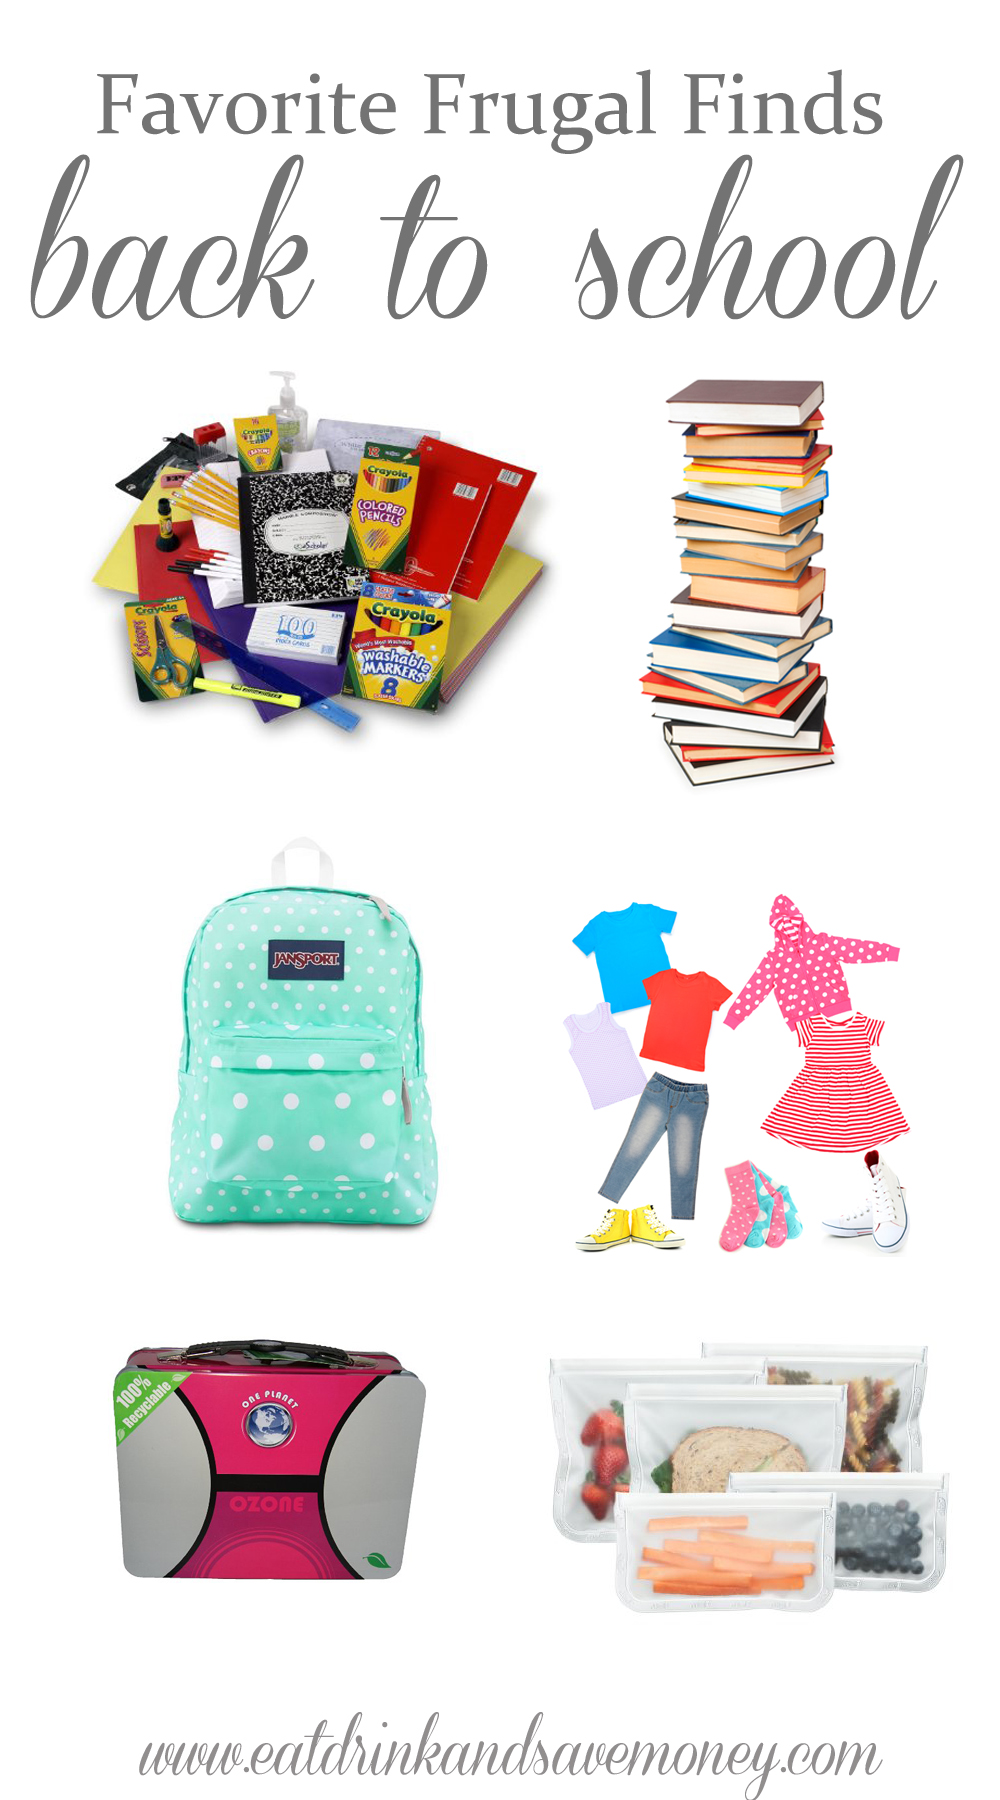 Favorite Frugal Finds Back to School | Find the best ways to get back to school deals.  School starts soon!  Don't wait to the last minute to get all your school supplies!